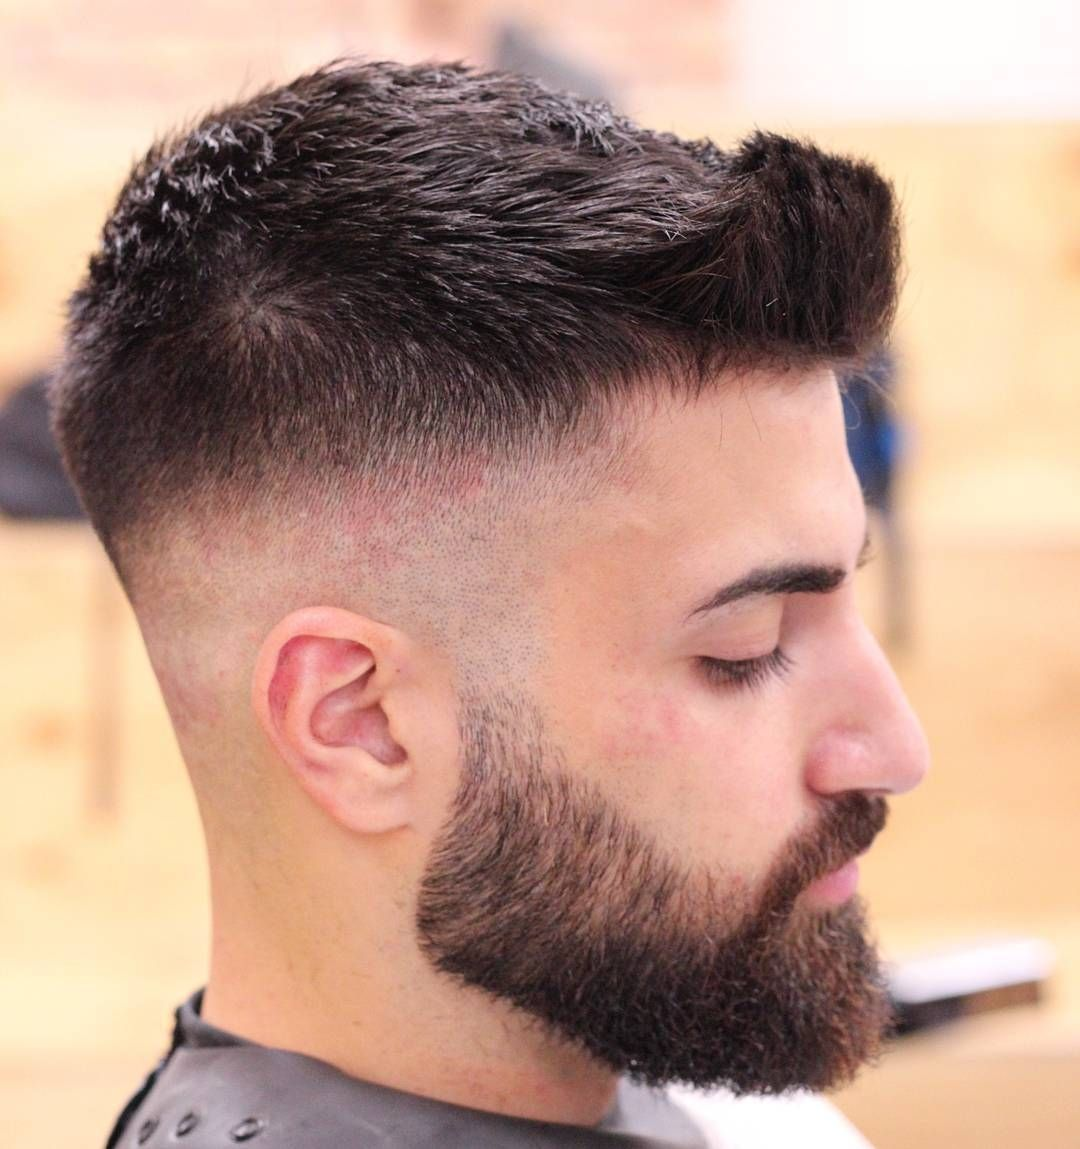 Boy hairstyle latest the  biggest menus haircut trends to try for summer  in